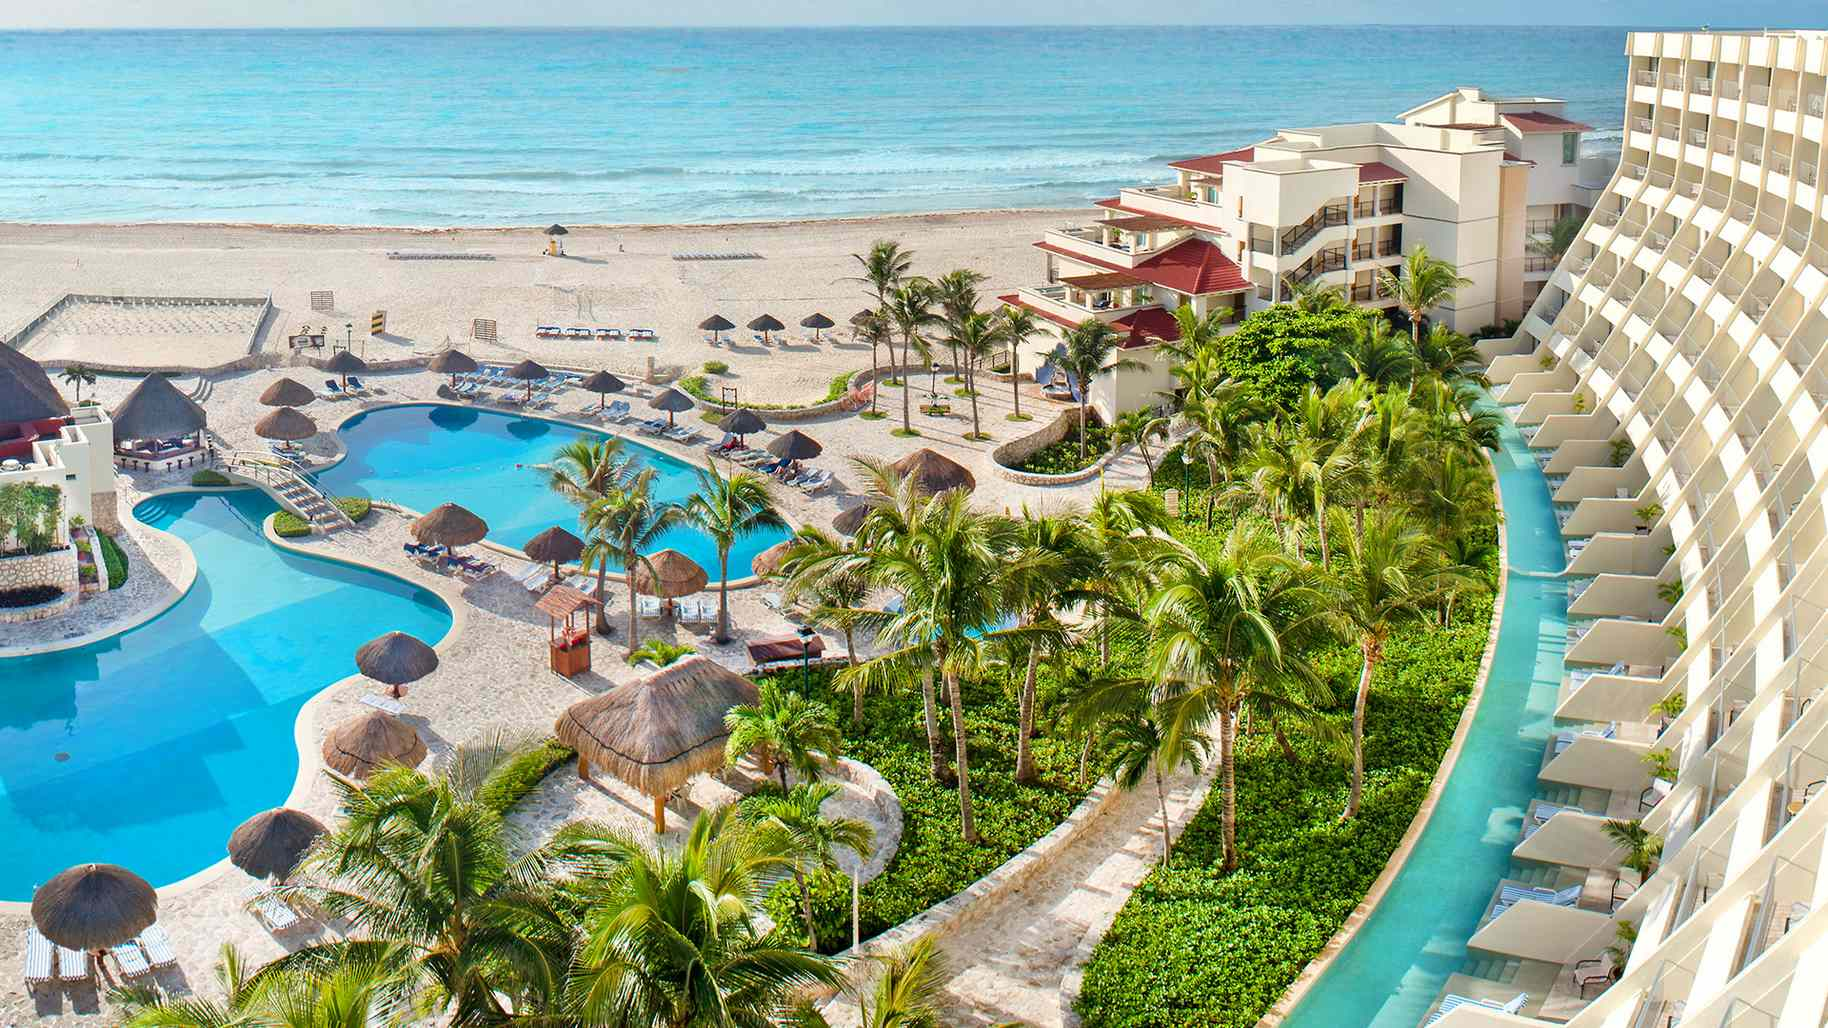 royal-holiday-hotel-resort-swim-up-grand-park-royal-cancun-caribe-mexico-quintana-roo-cancun